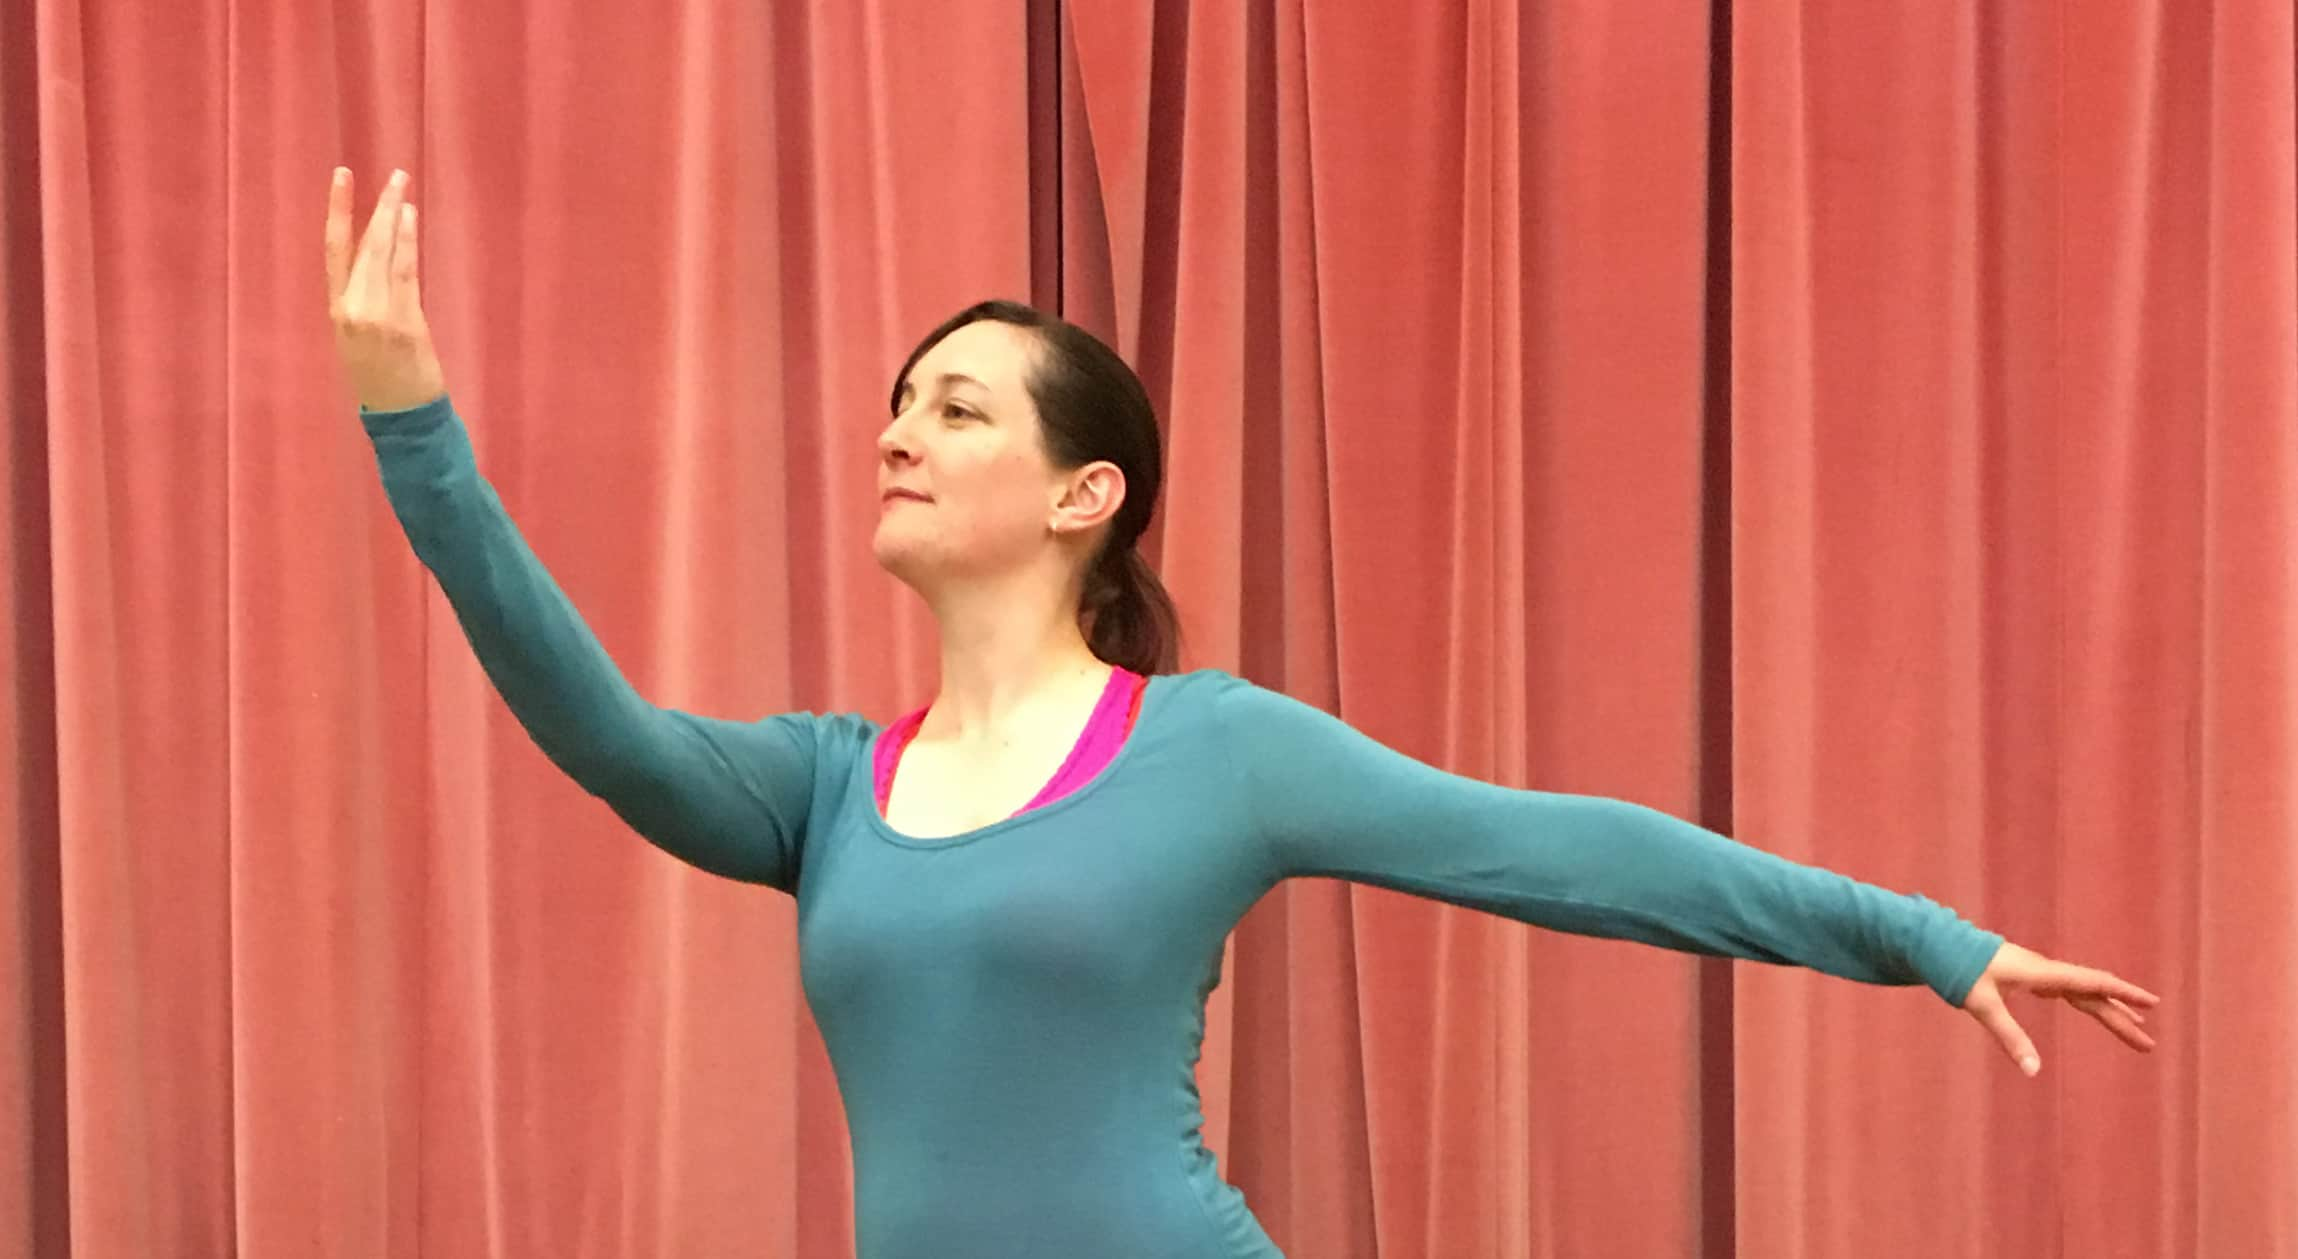 Elissa Sara needed ankle exercises to rehabilitate her achilles, and returning to ballet was the perfect solution